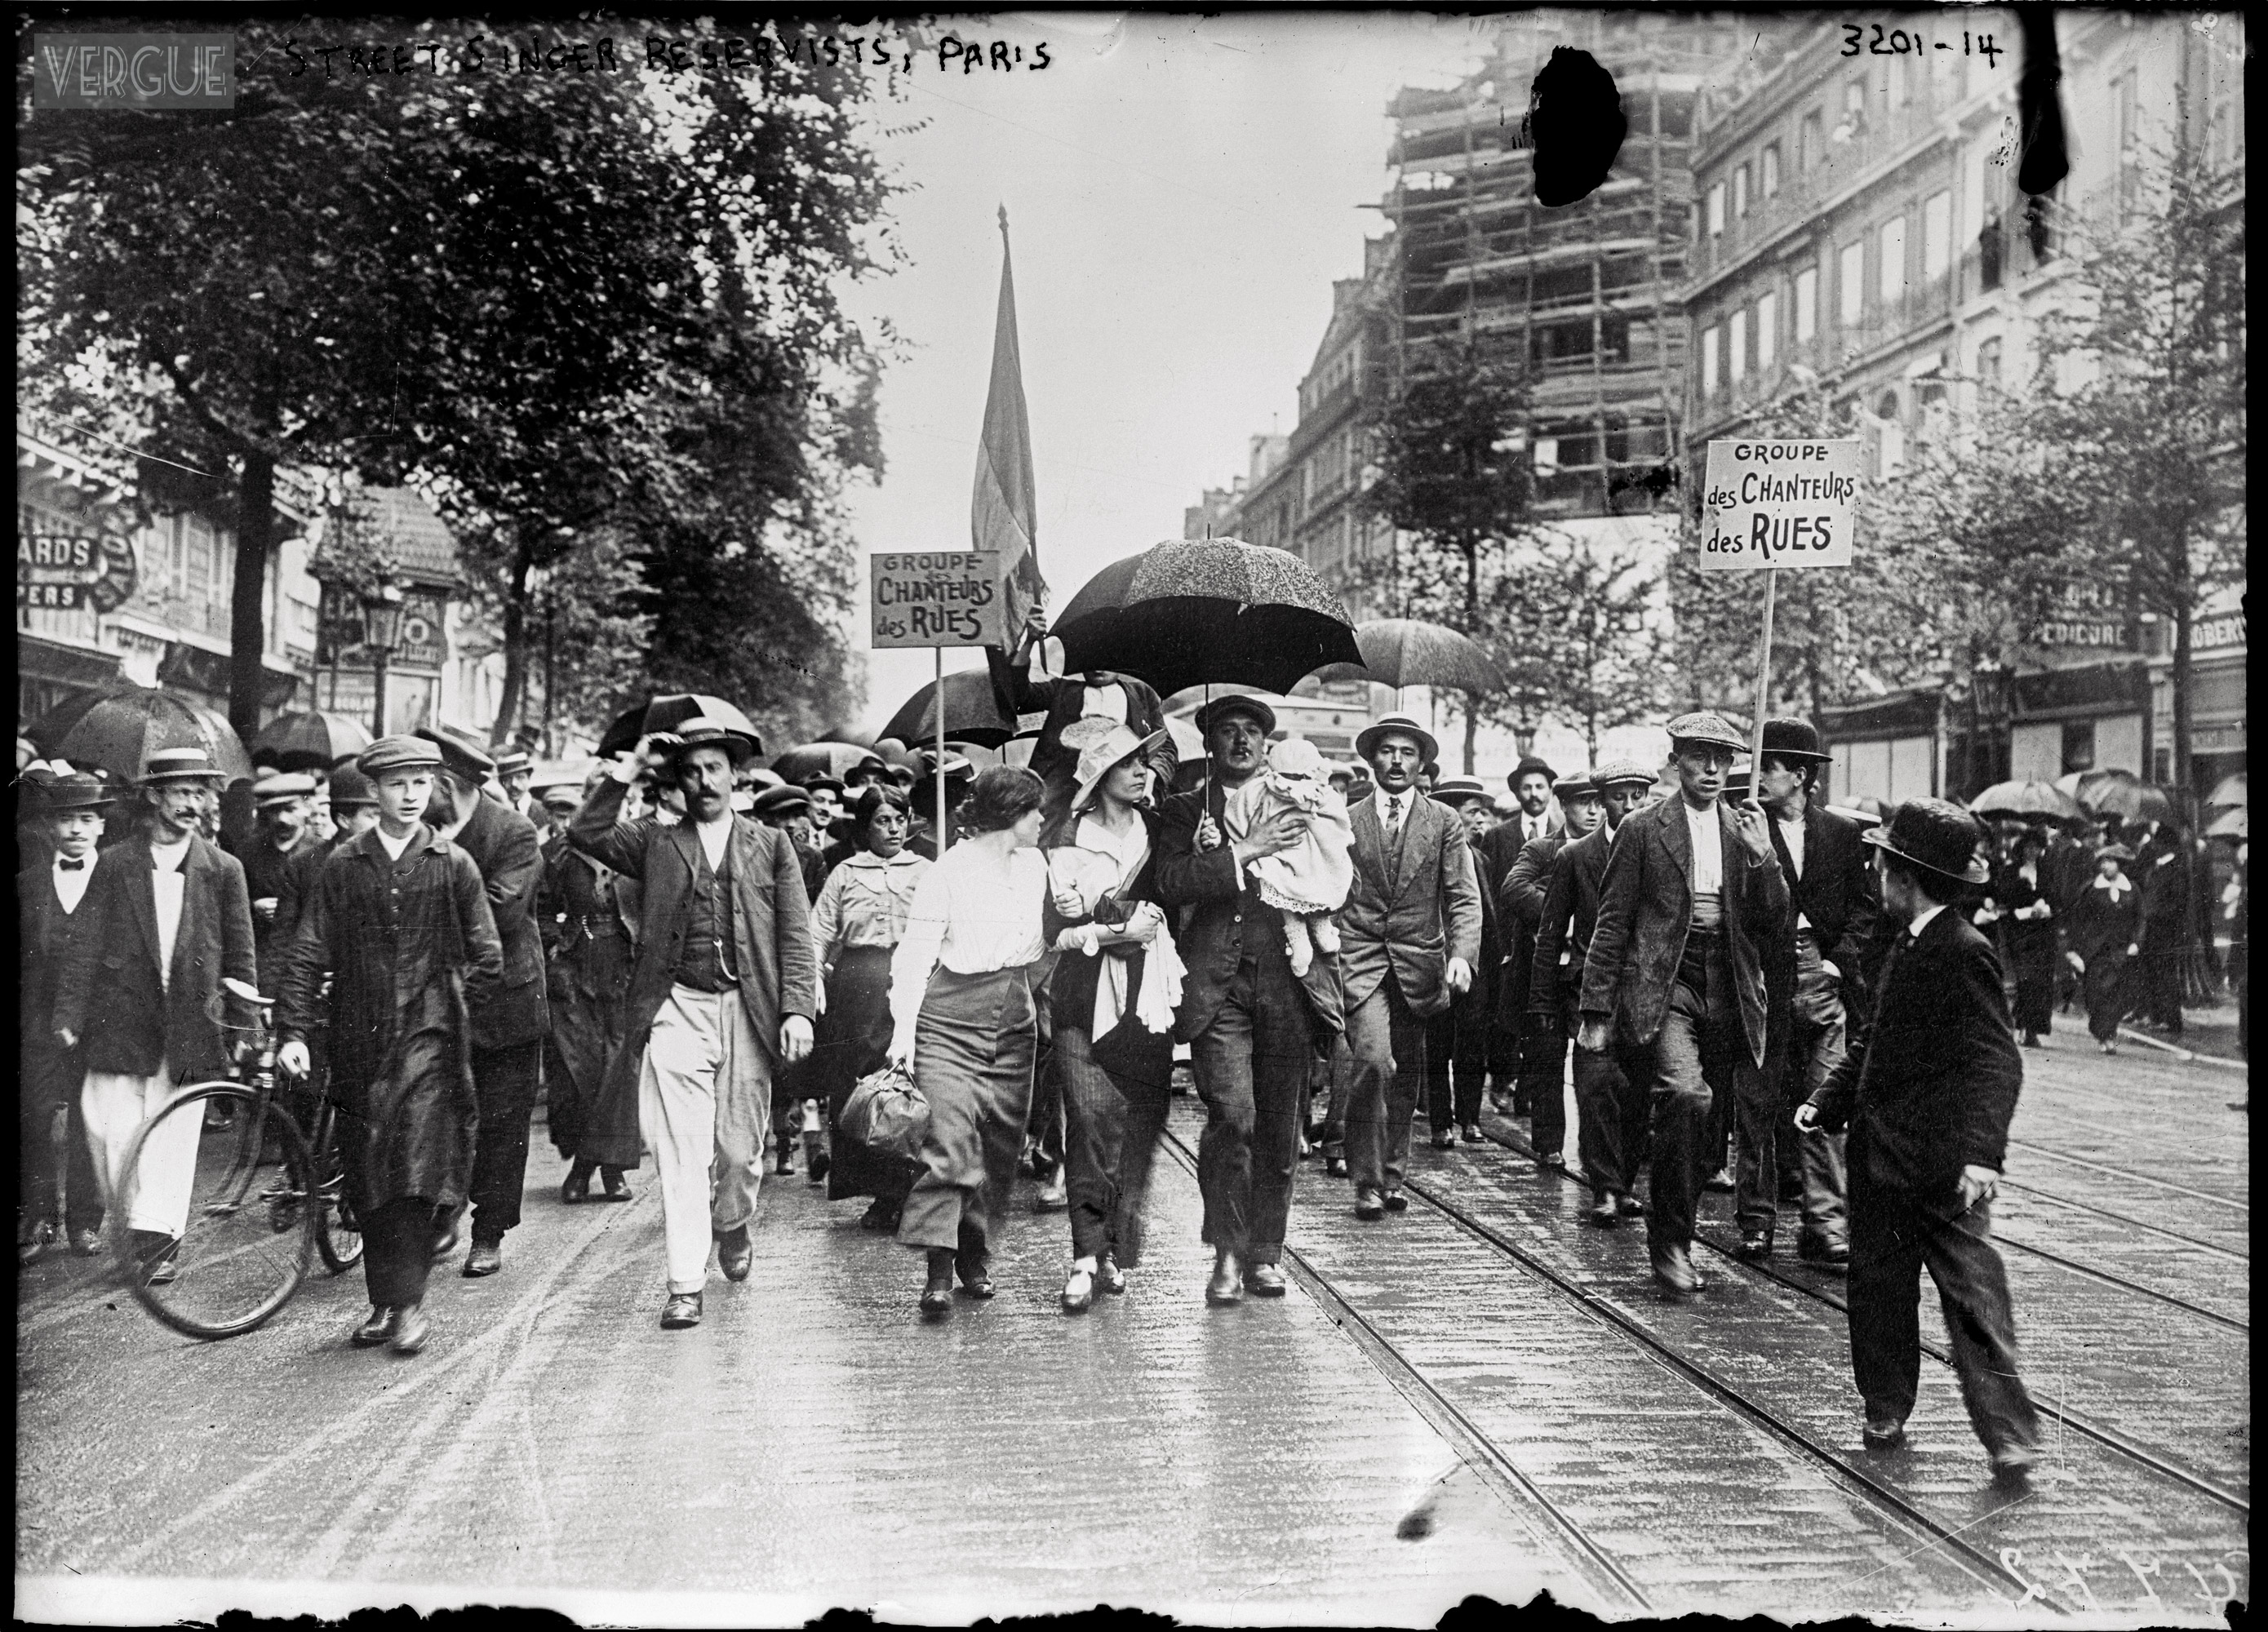 Families accompanying their soon-to-be French soldiers to the train station, August 1914. Source: http://vergue.com/post/2013/10/08/A-la-guerre-en-chantant-1914